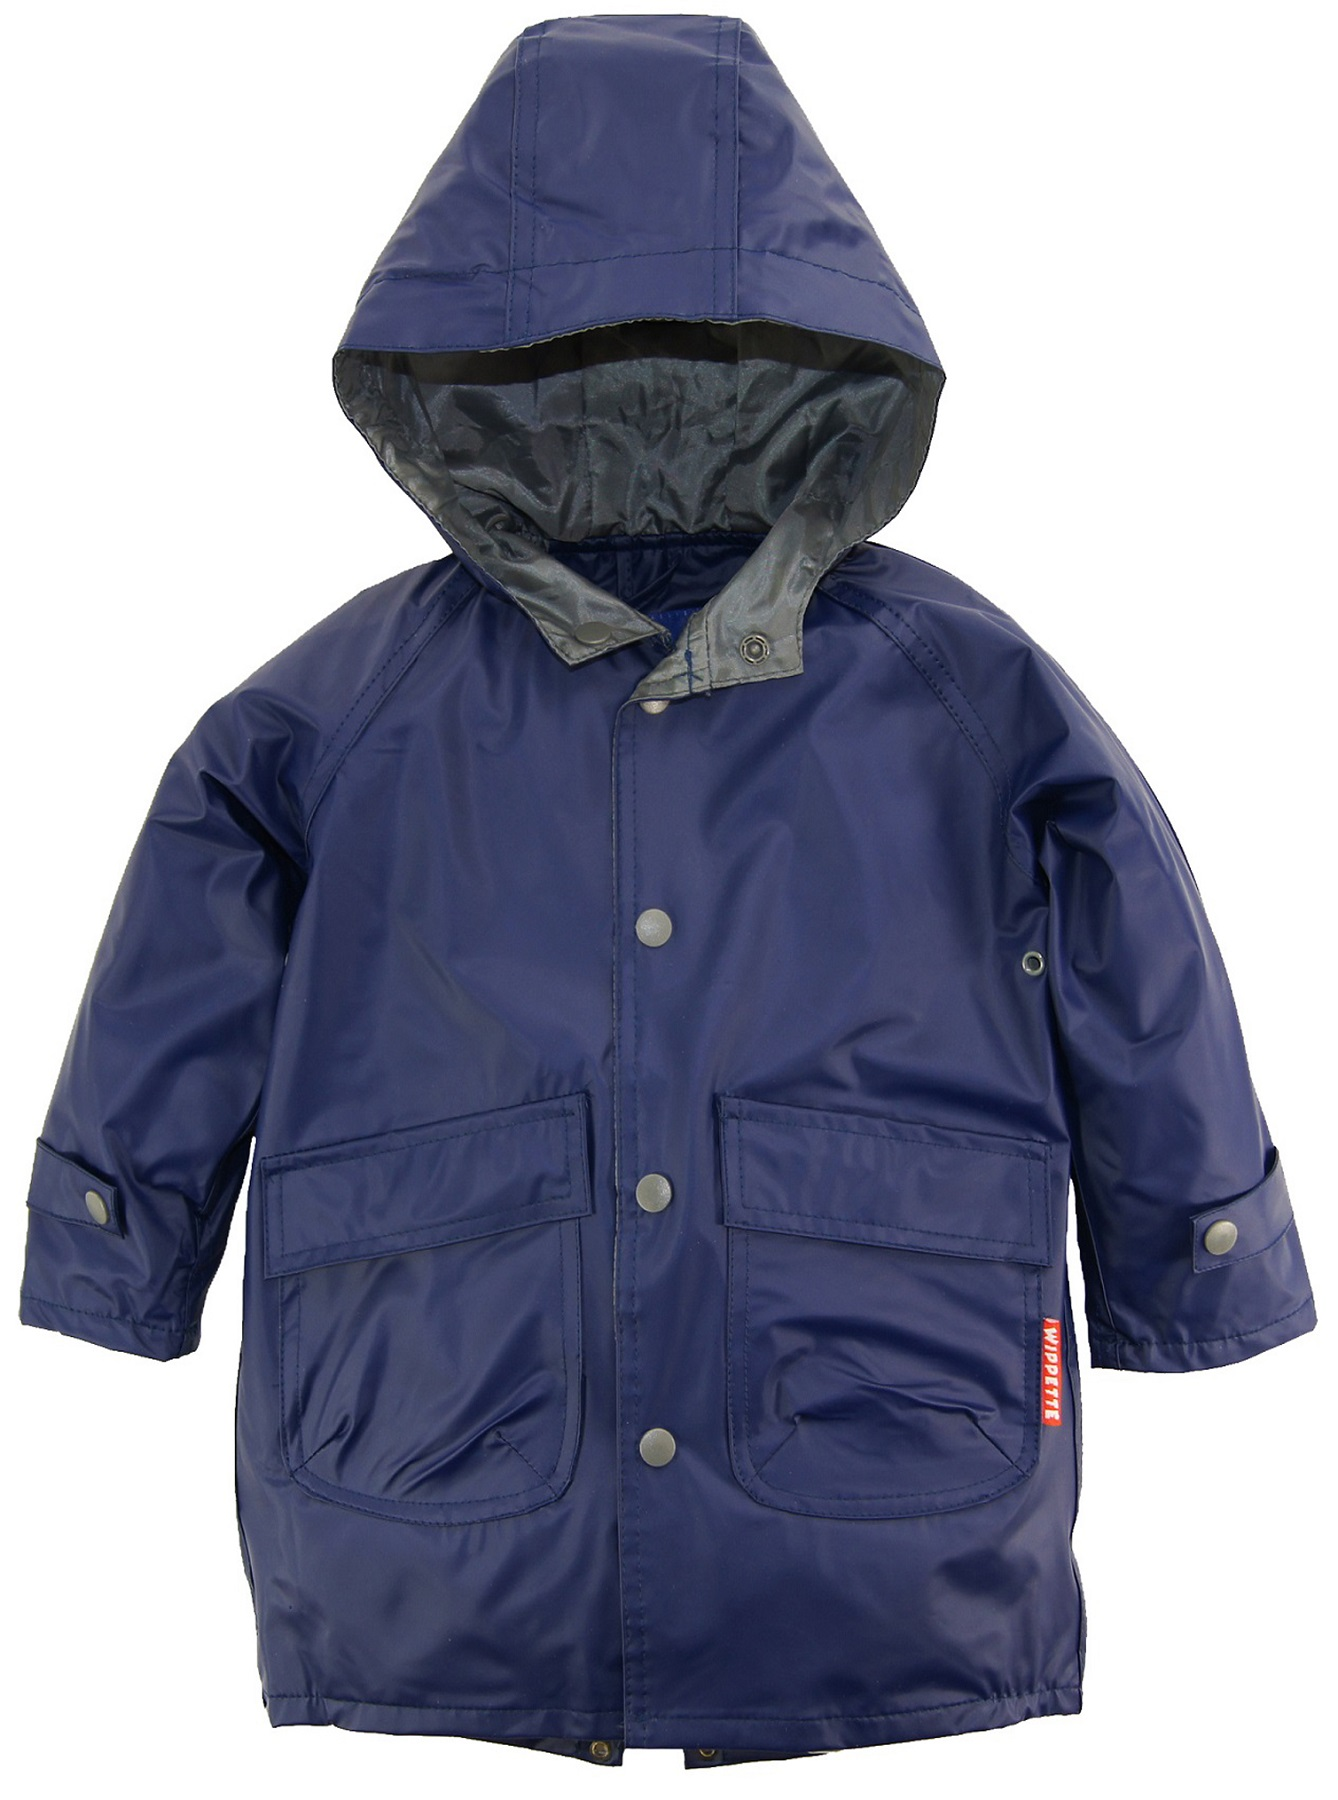 Wippette Little Boys Solid Hooded Fisherman Raincoat Anorak Jacket